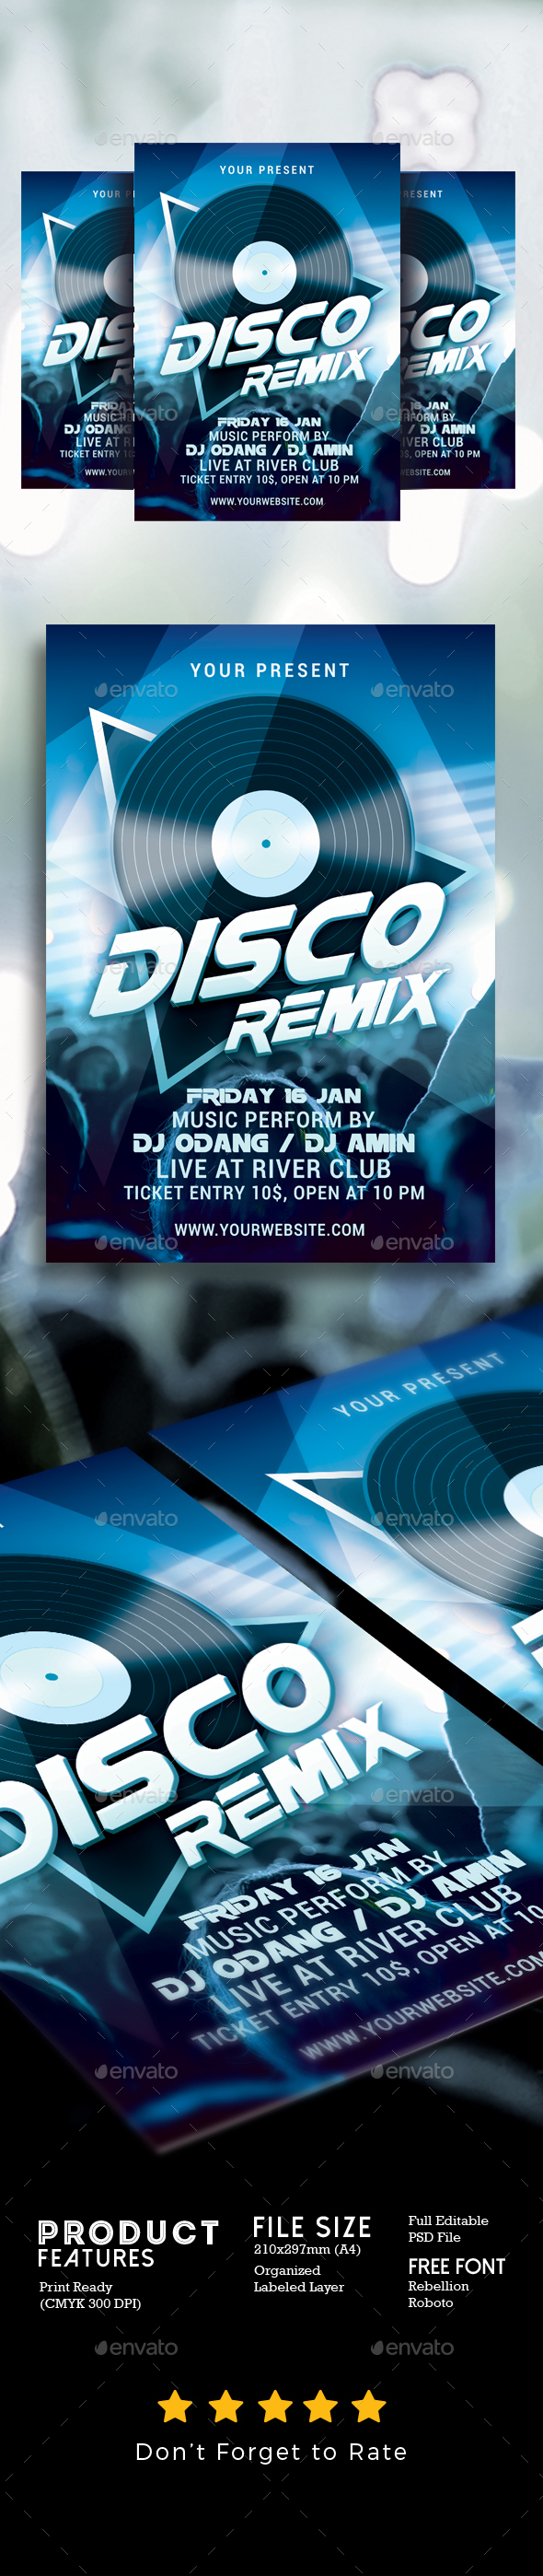 Disco Remix Party Flyer - Clubs & Parties Events